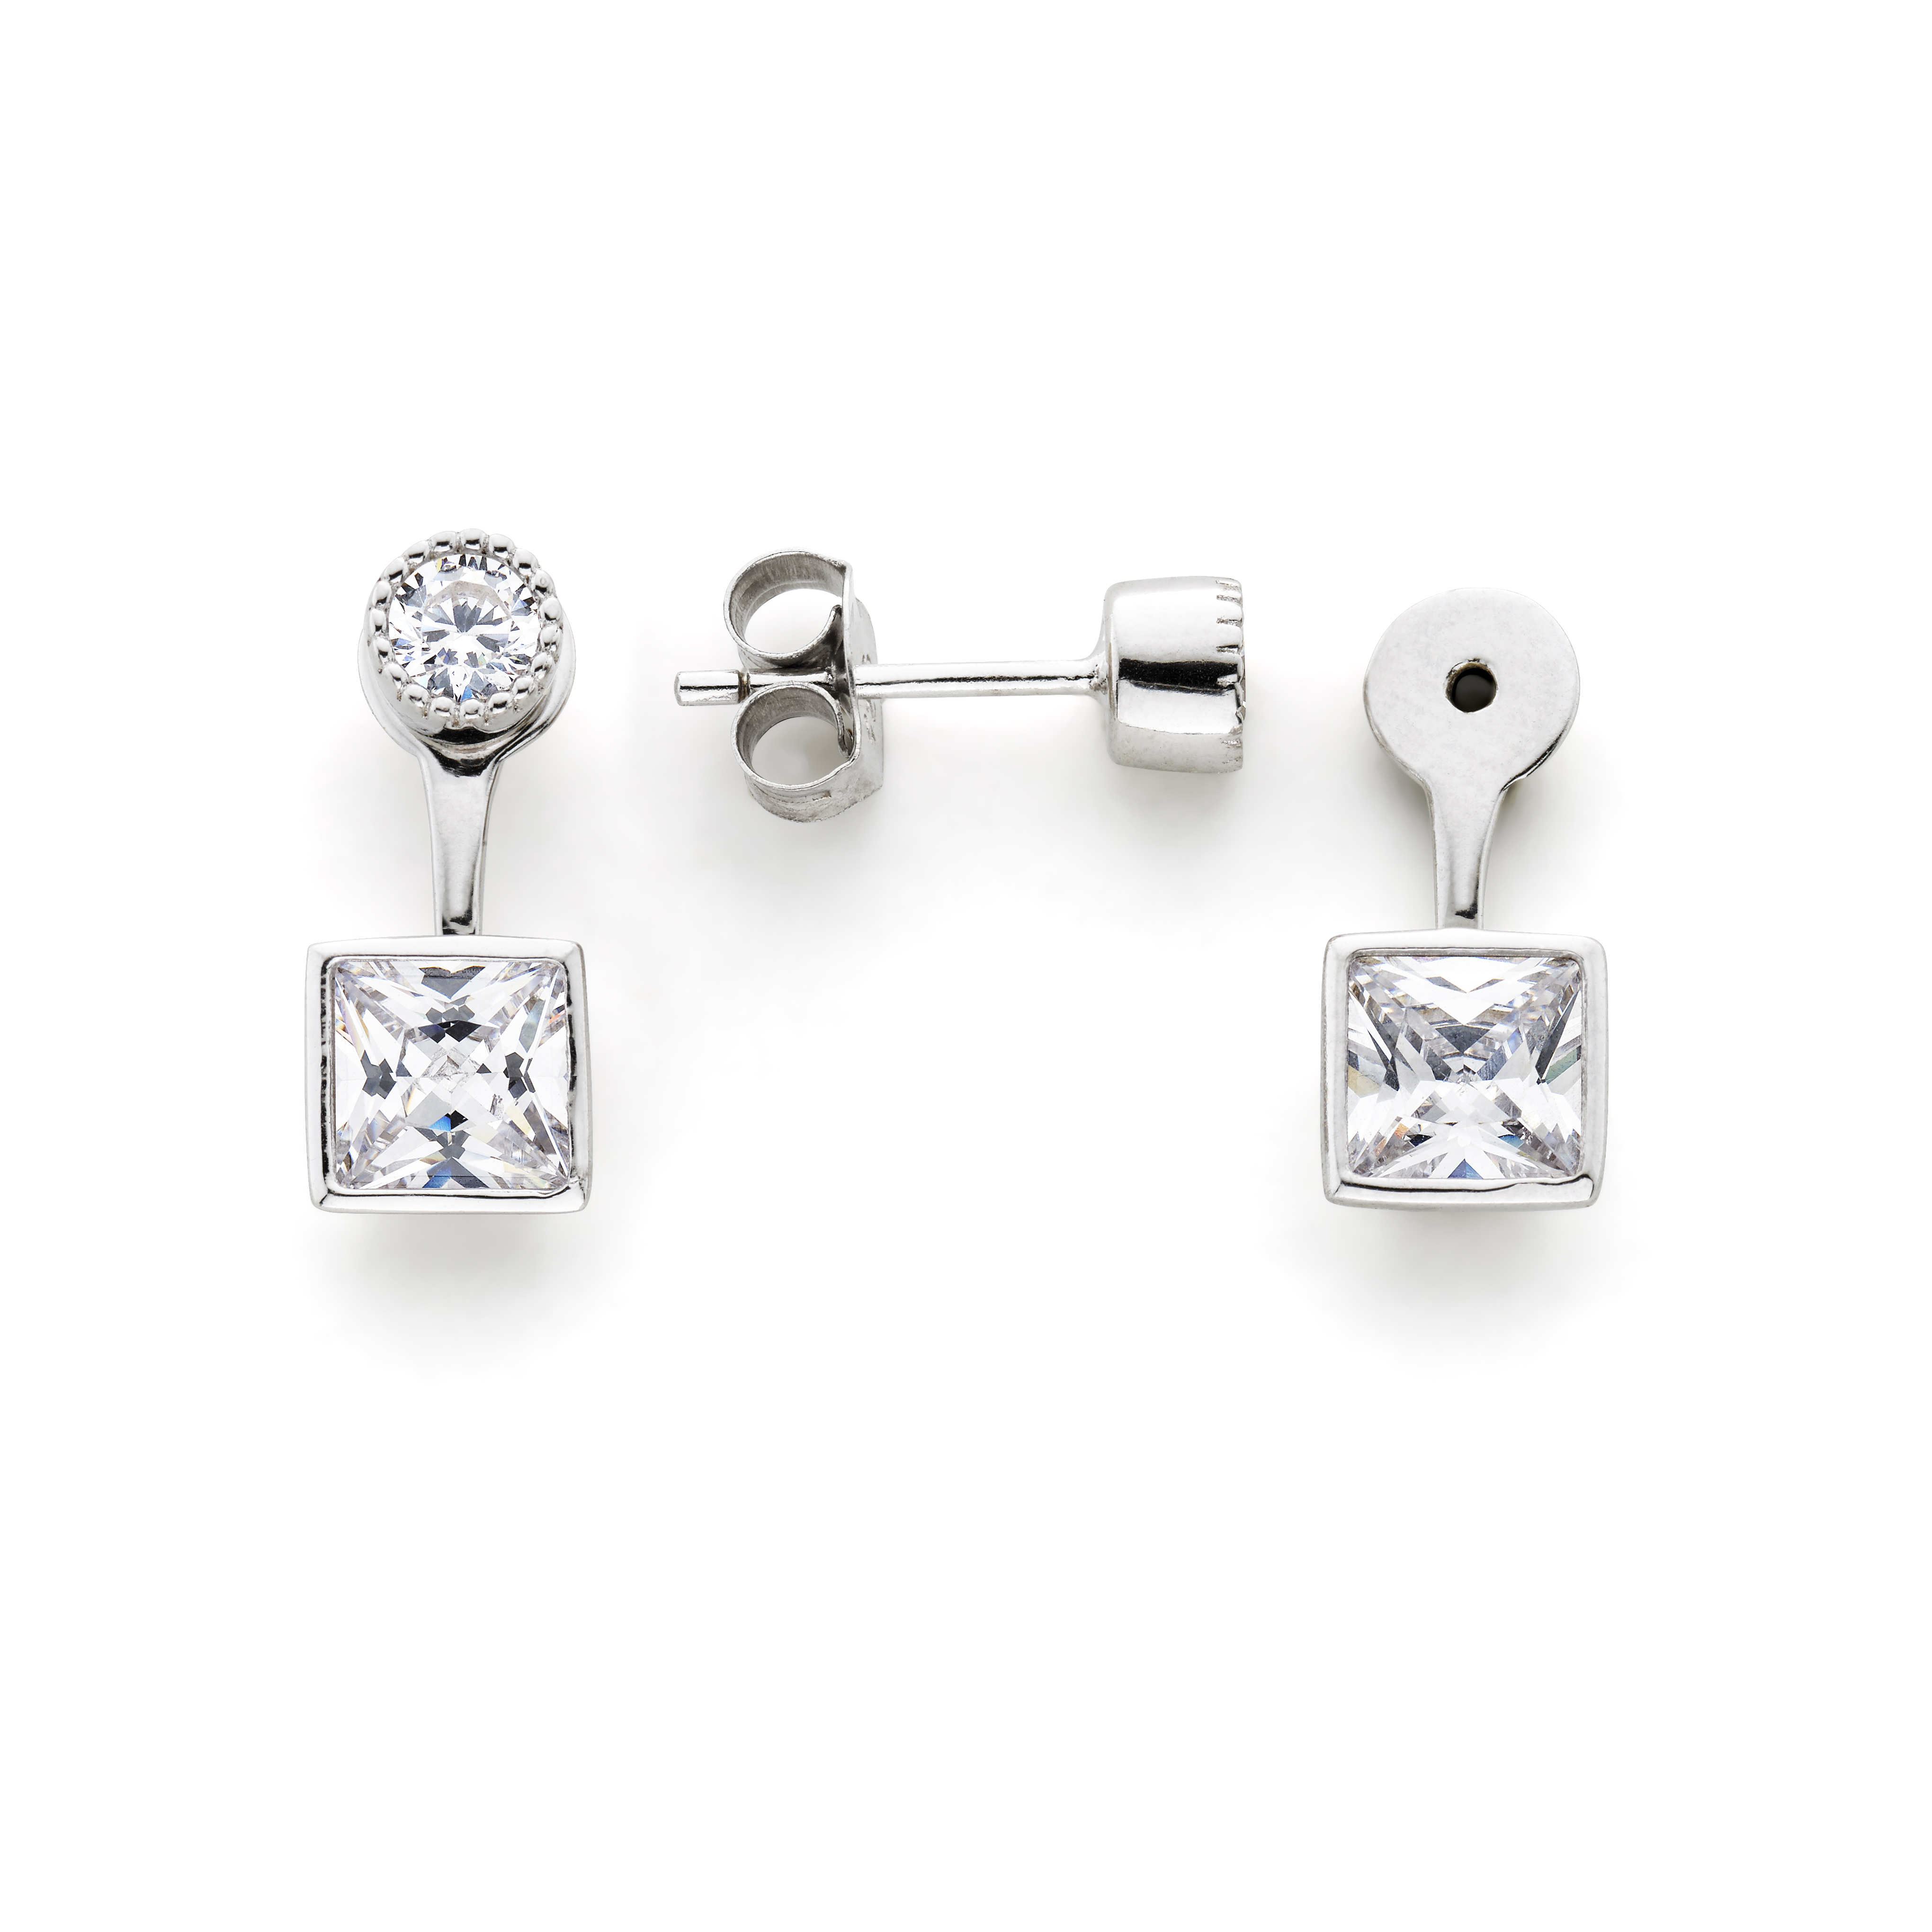 Cubic Zirconia Stud with Jacket Sterling Silver Plated Earrings